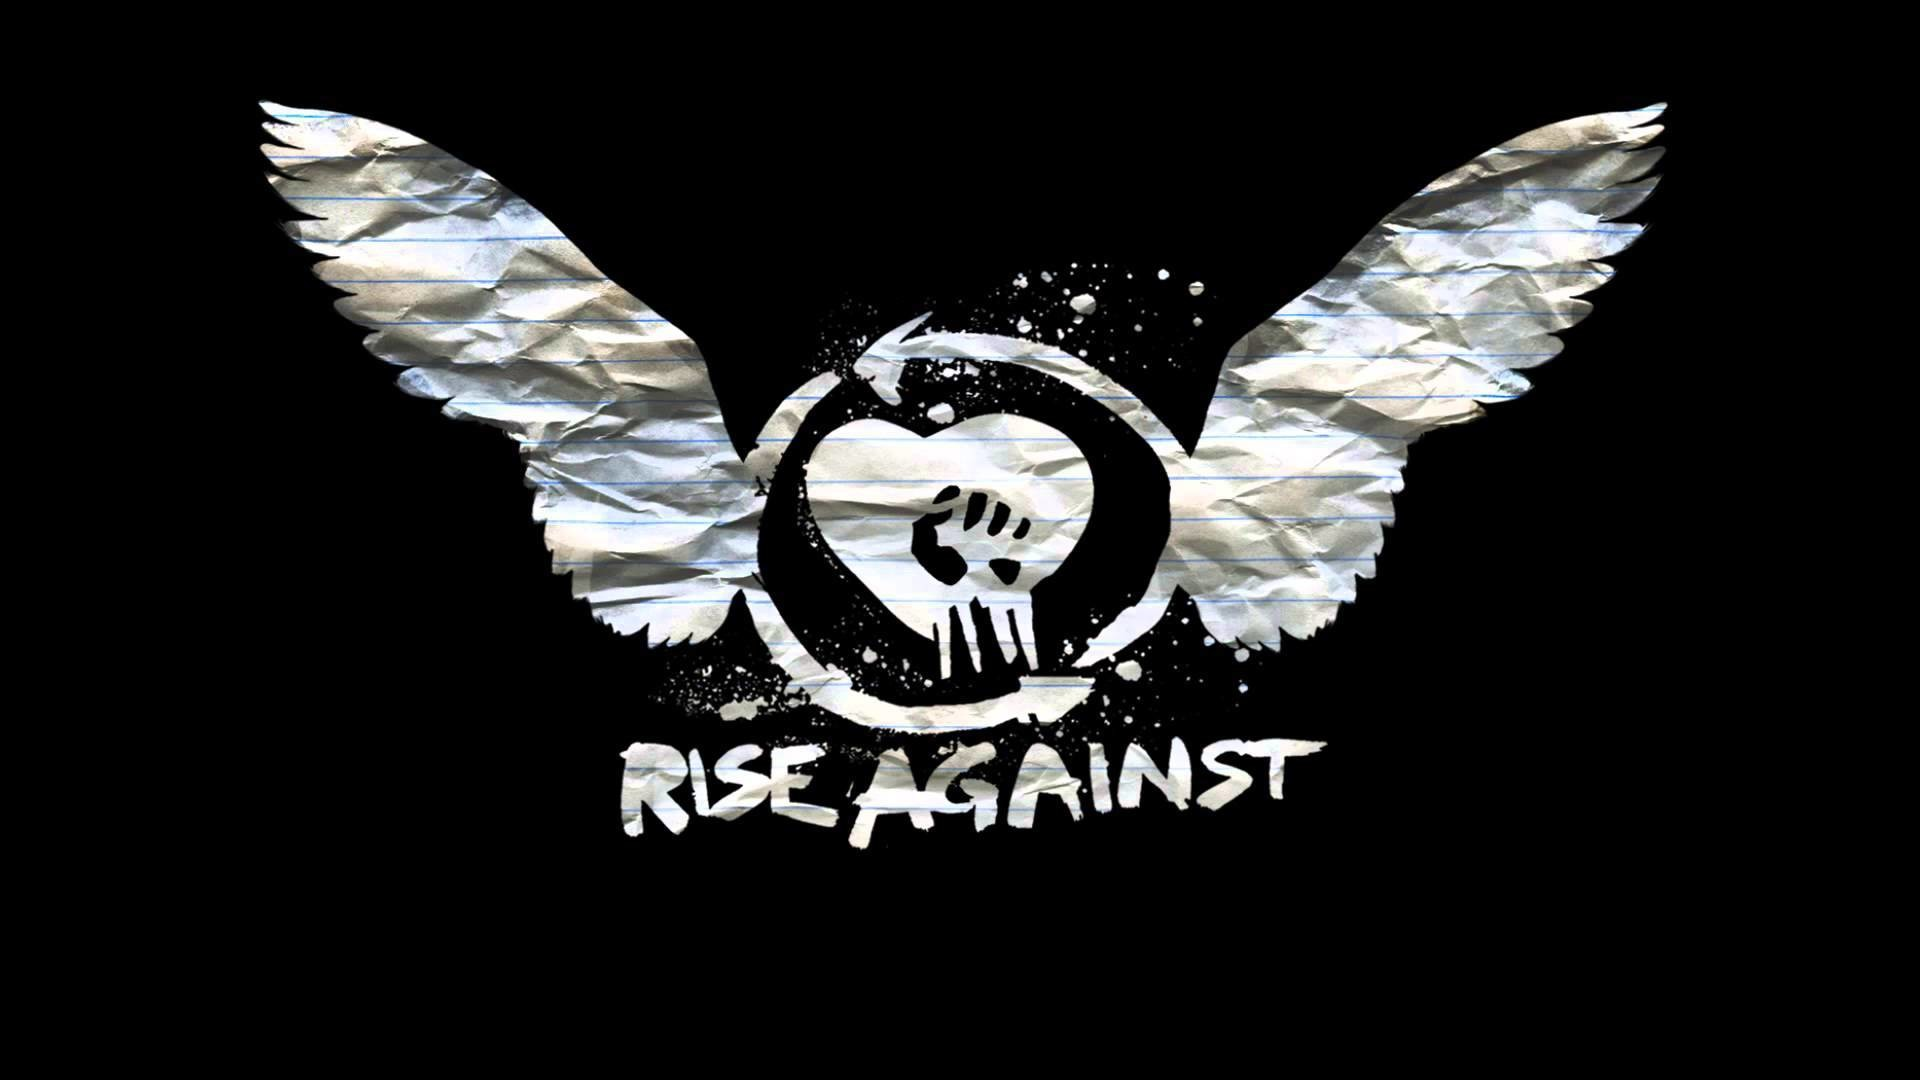 rise against albums download